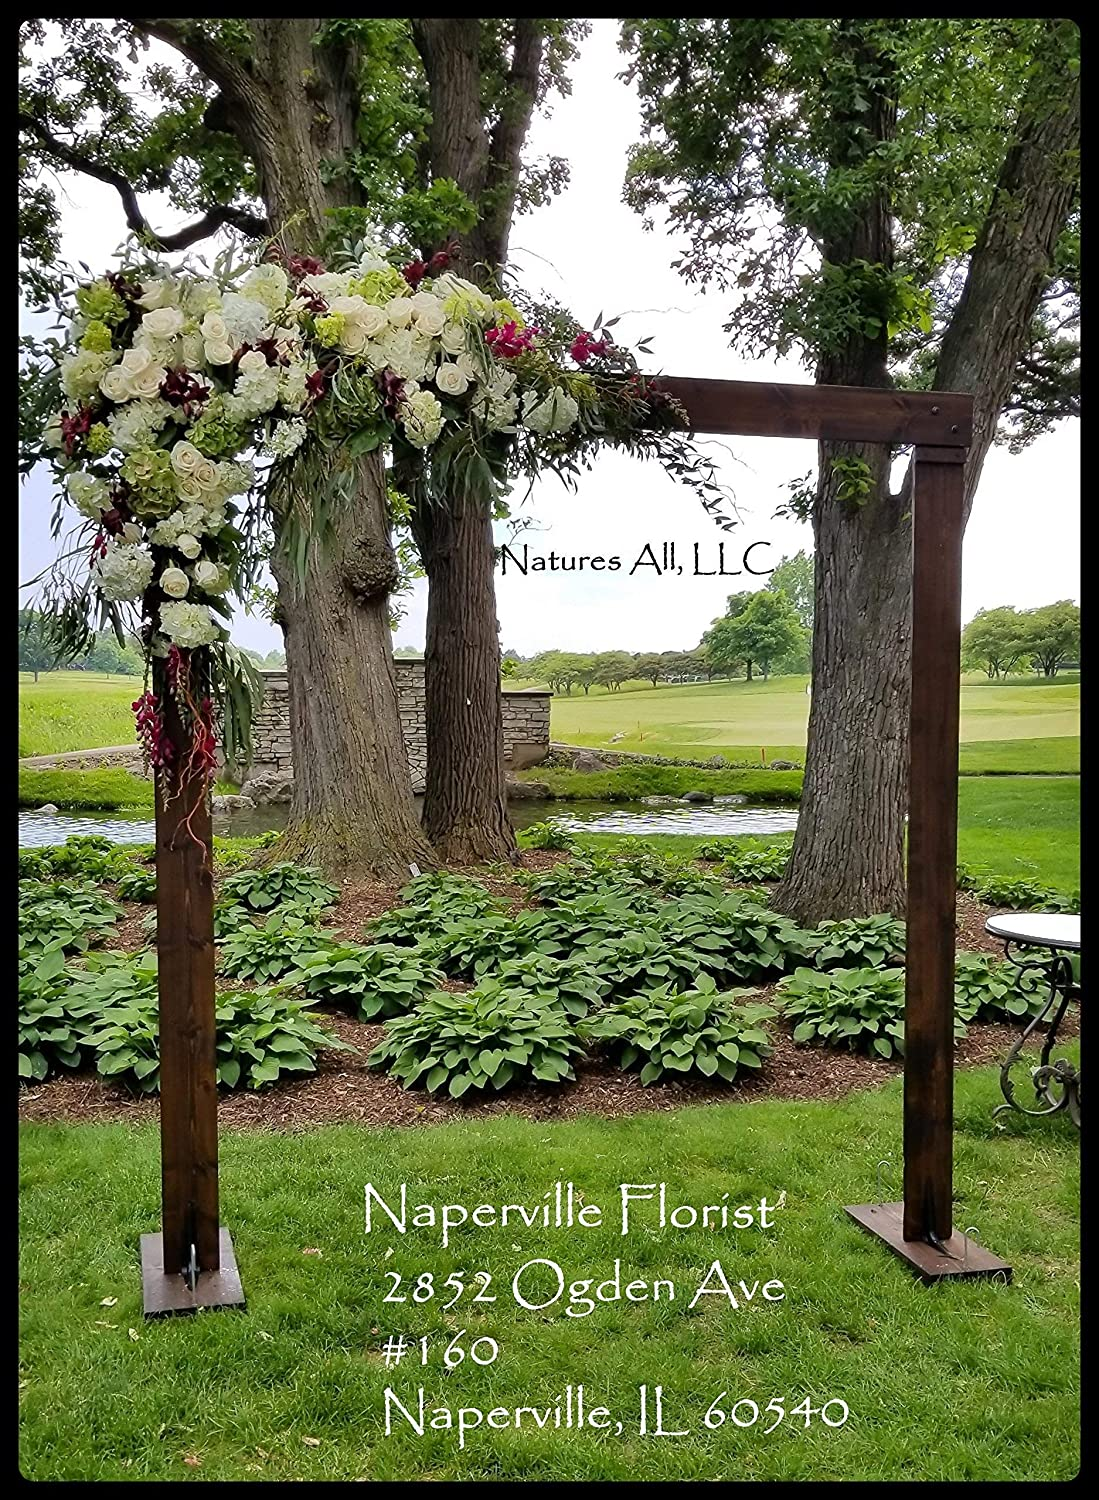 Rustic Wedding Arch.Rustic Wooden Wedding Arch Or Arbor Complete Kit For Indoor Or Outdoor Weddings Stained In Dark Walnut